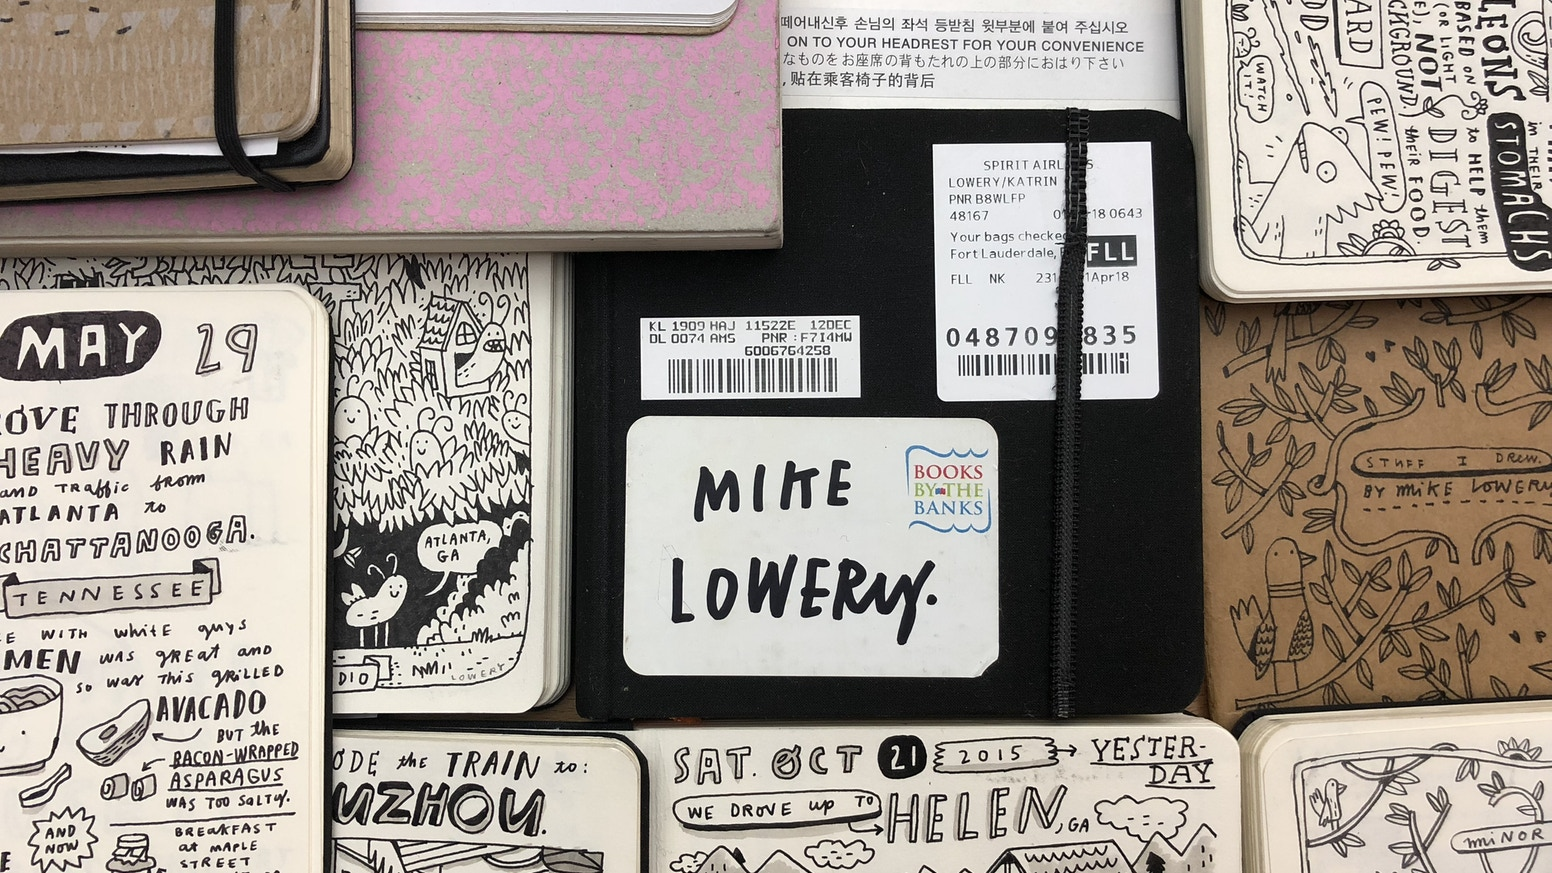 A book that collects travel drawings and comics from the sketchbooks of Mike Lowery.